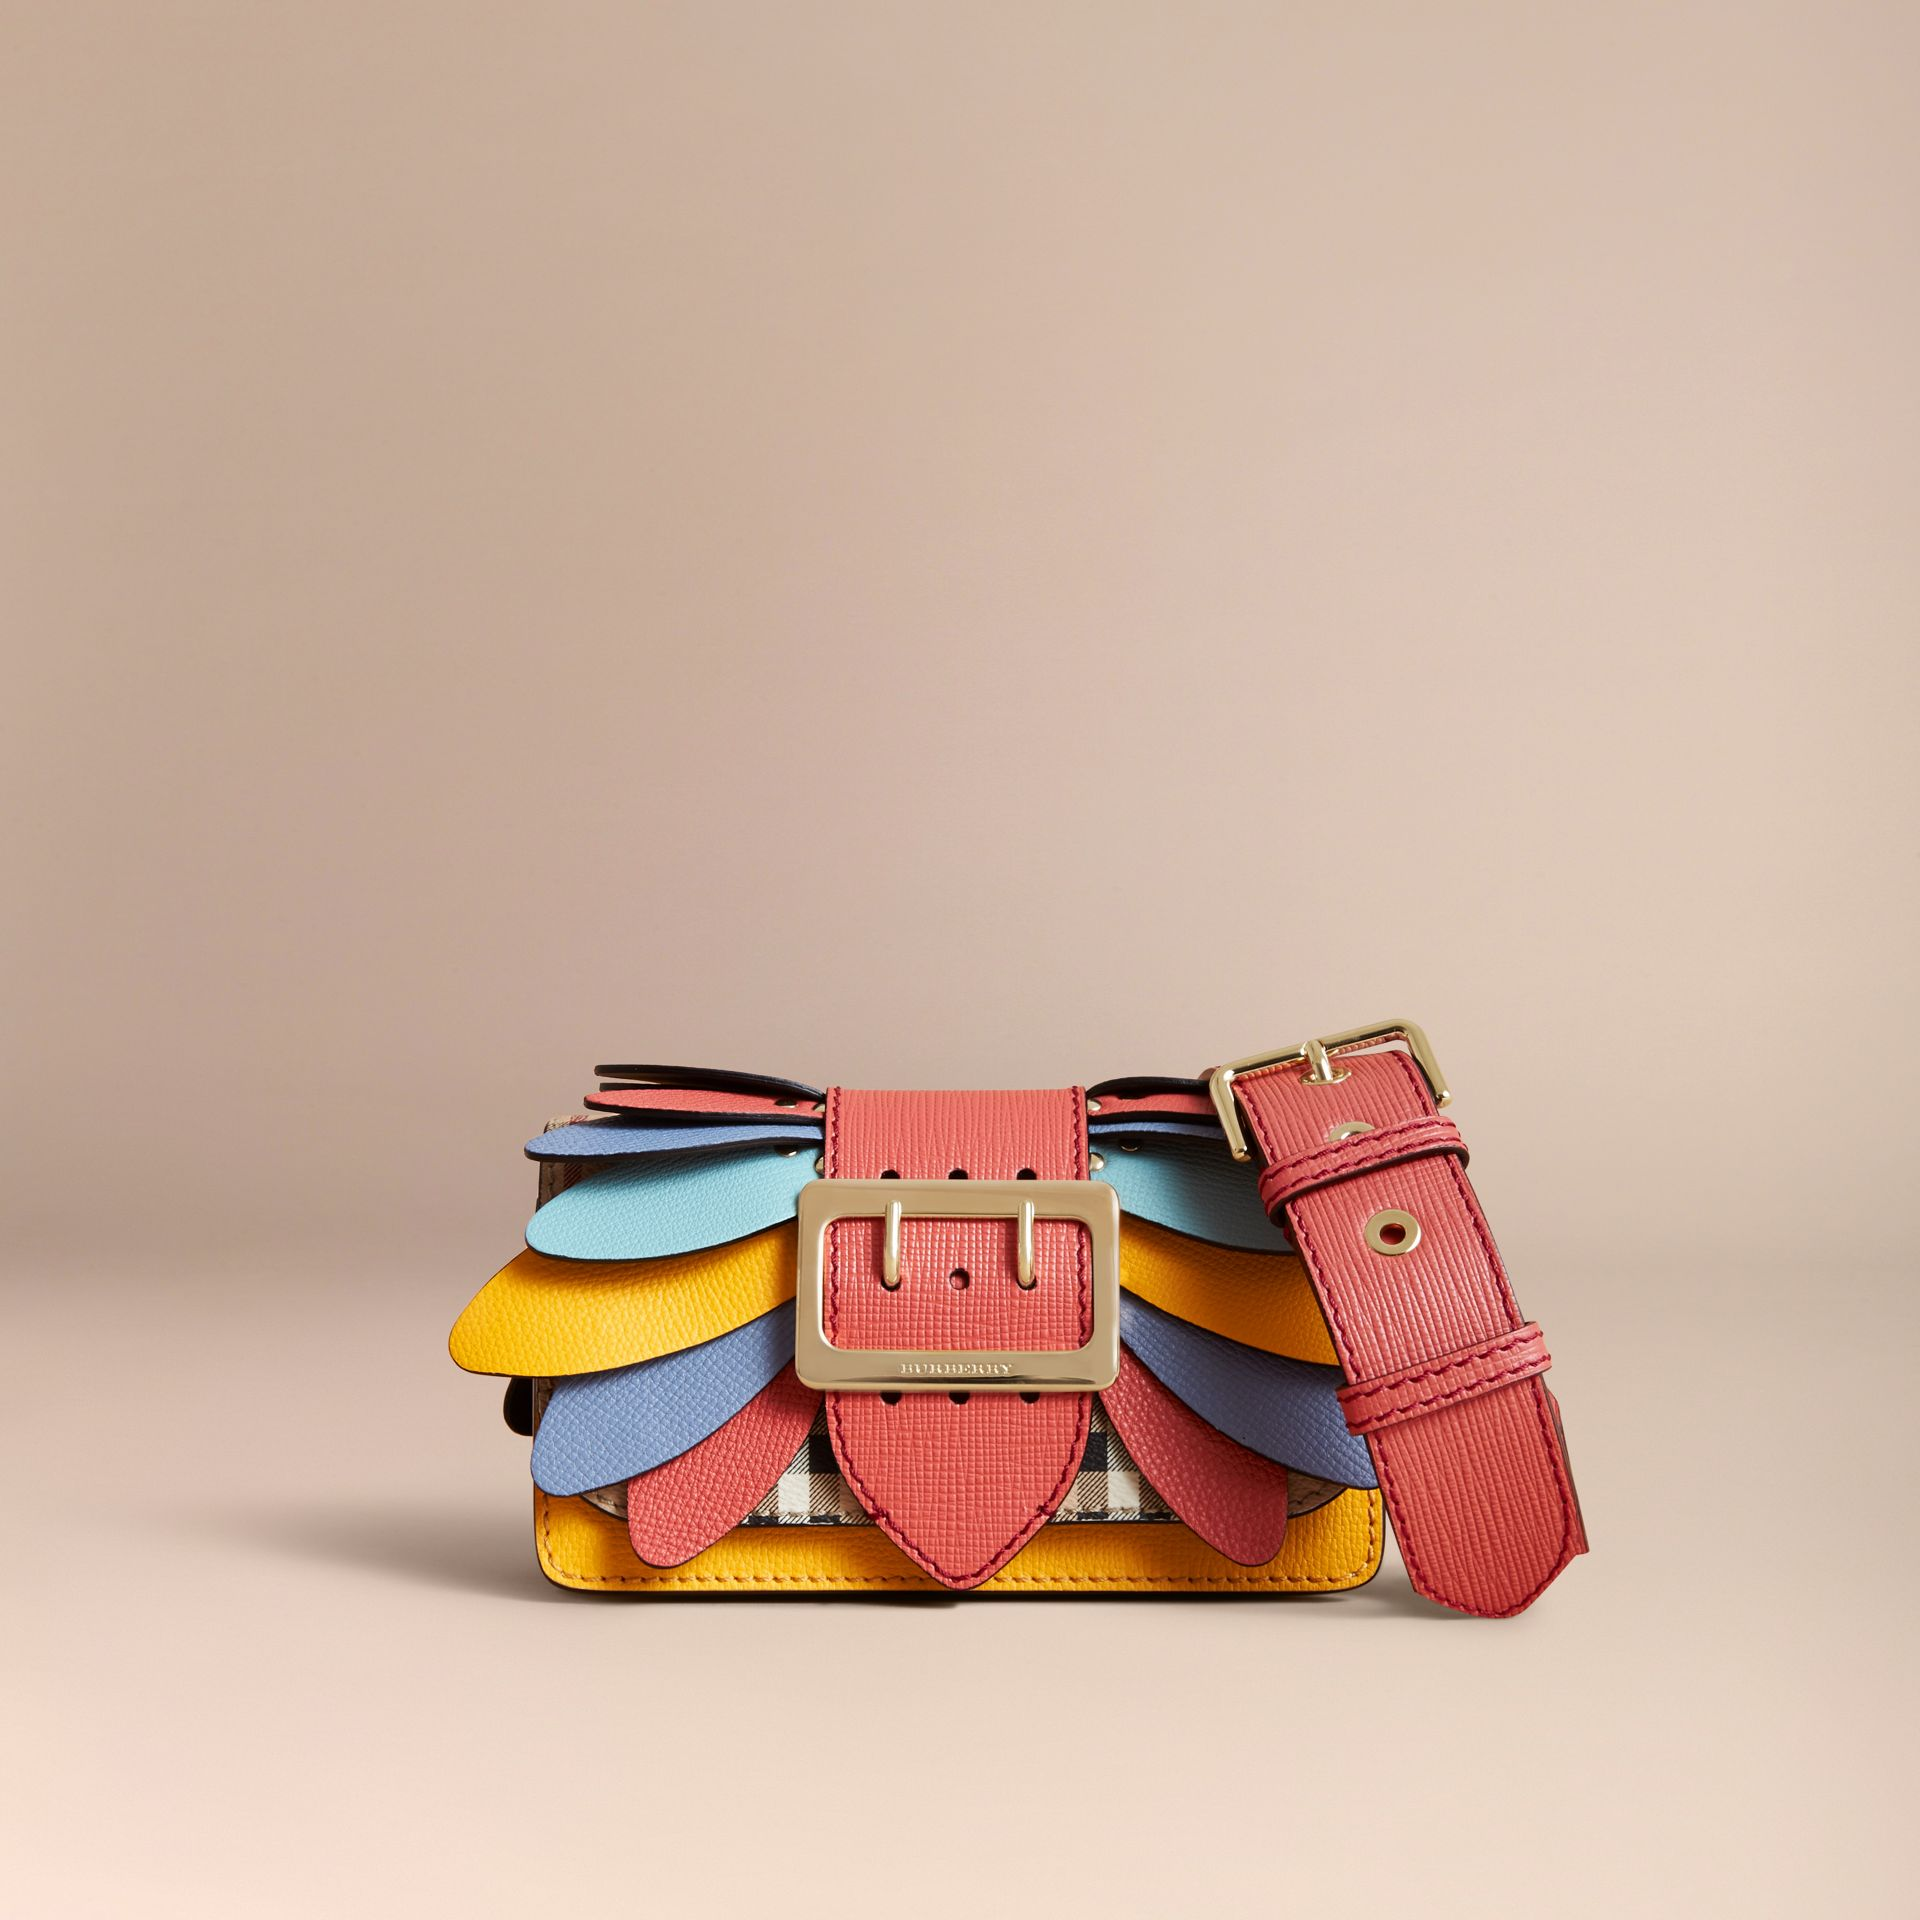 Petit sac The Buckle en coton Haymarket check et cuir - Femme | Burberry - photo de la galerie 8